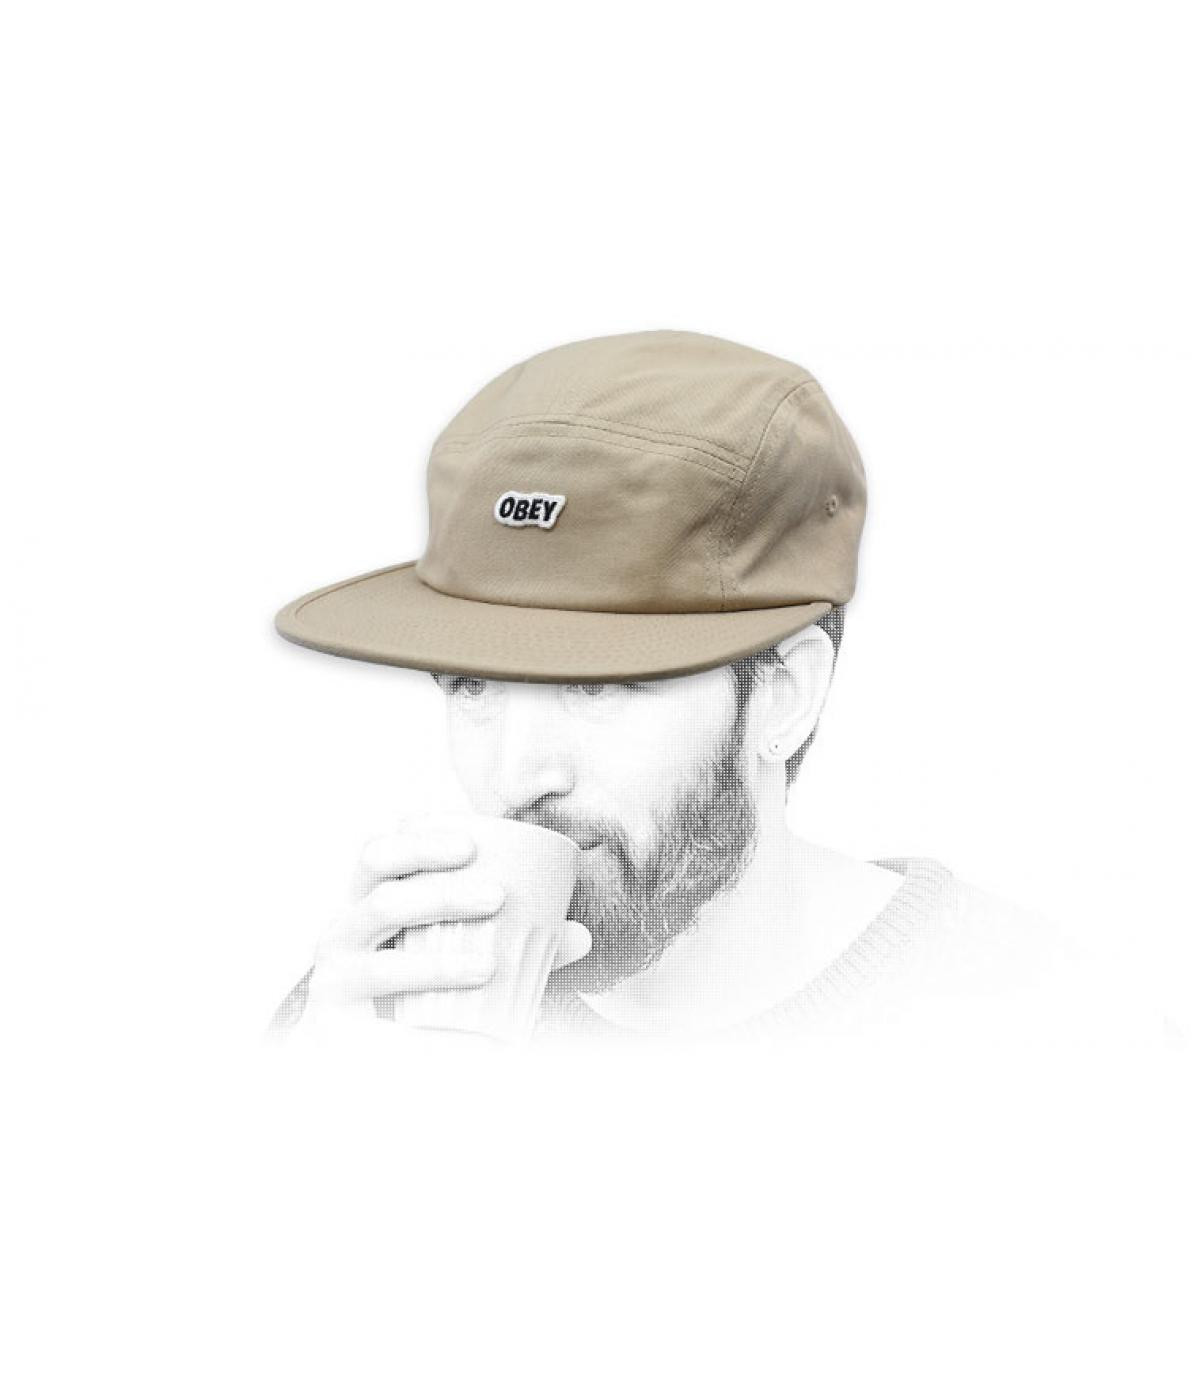 casquette Obey 5 panel beige